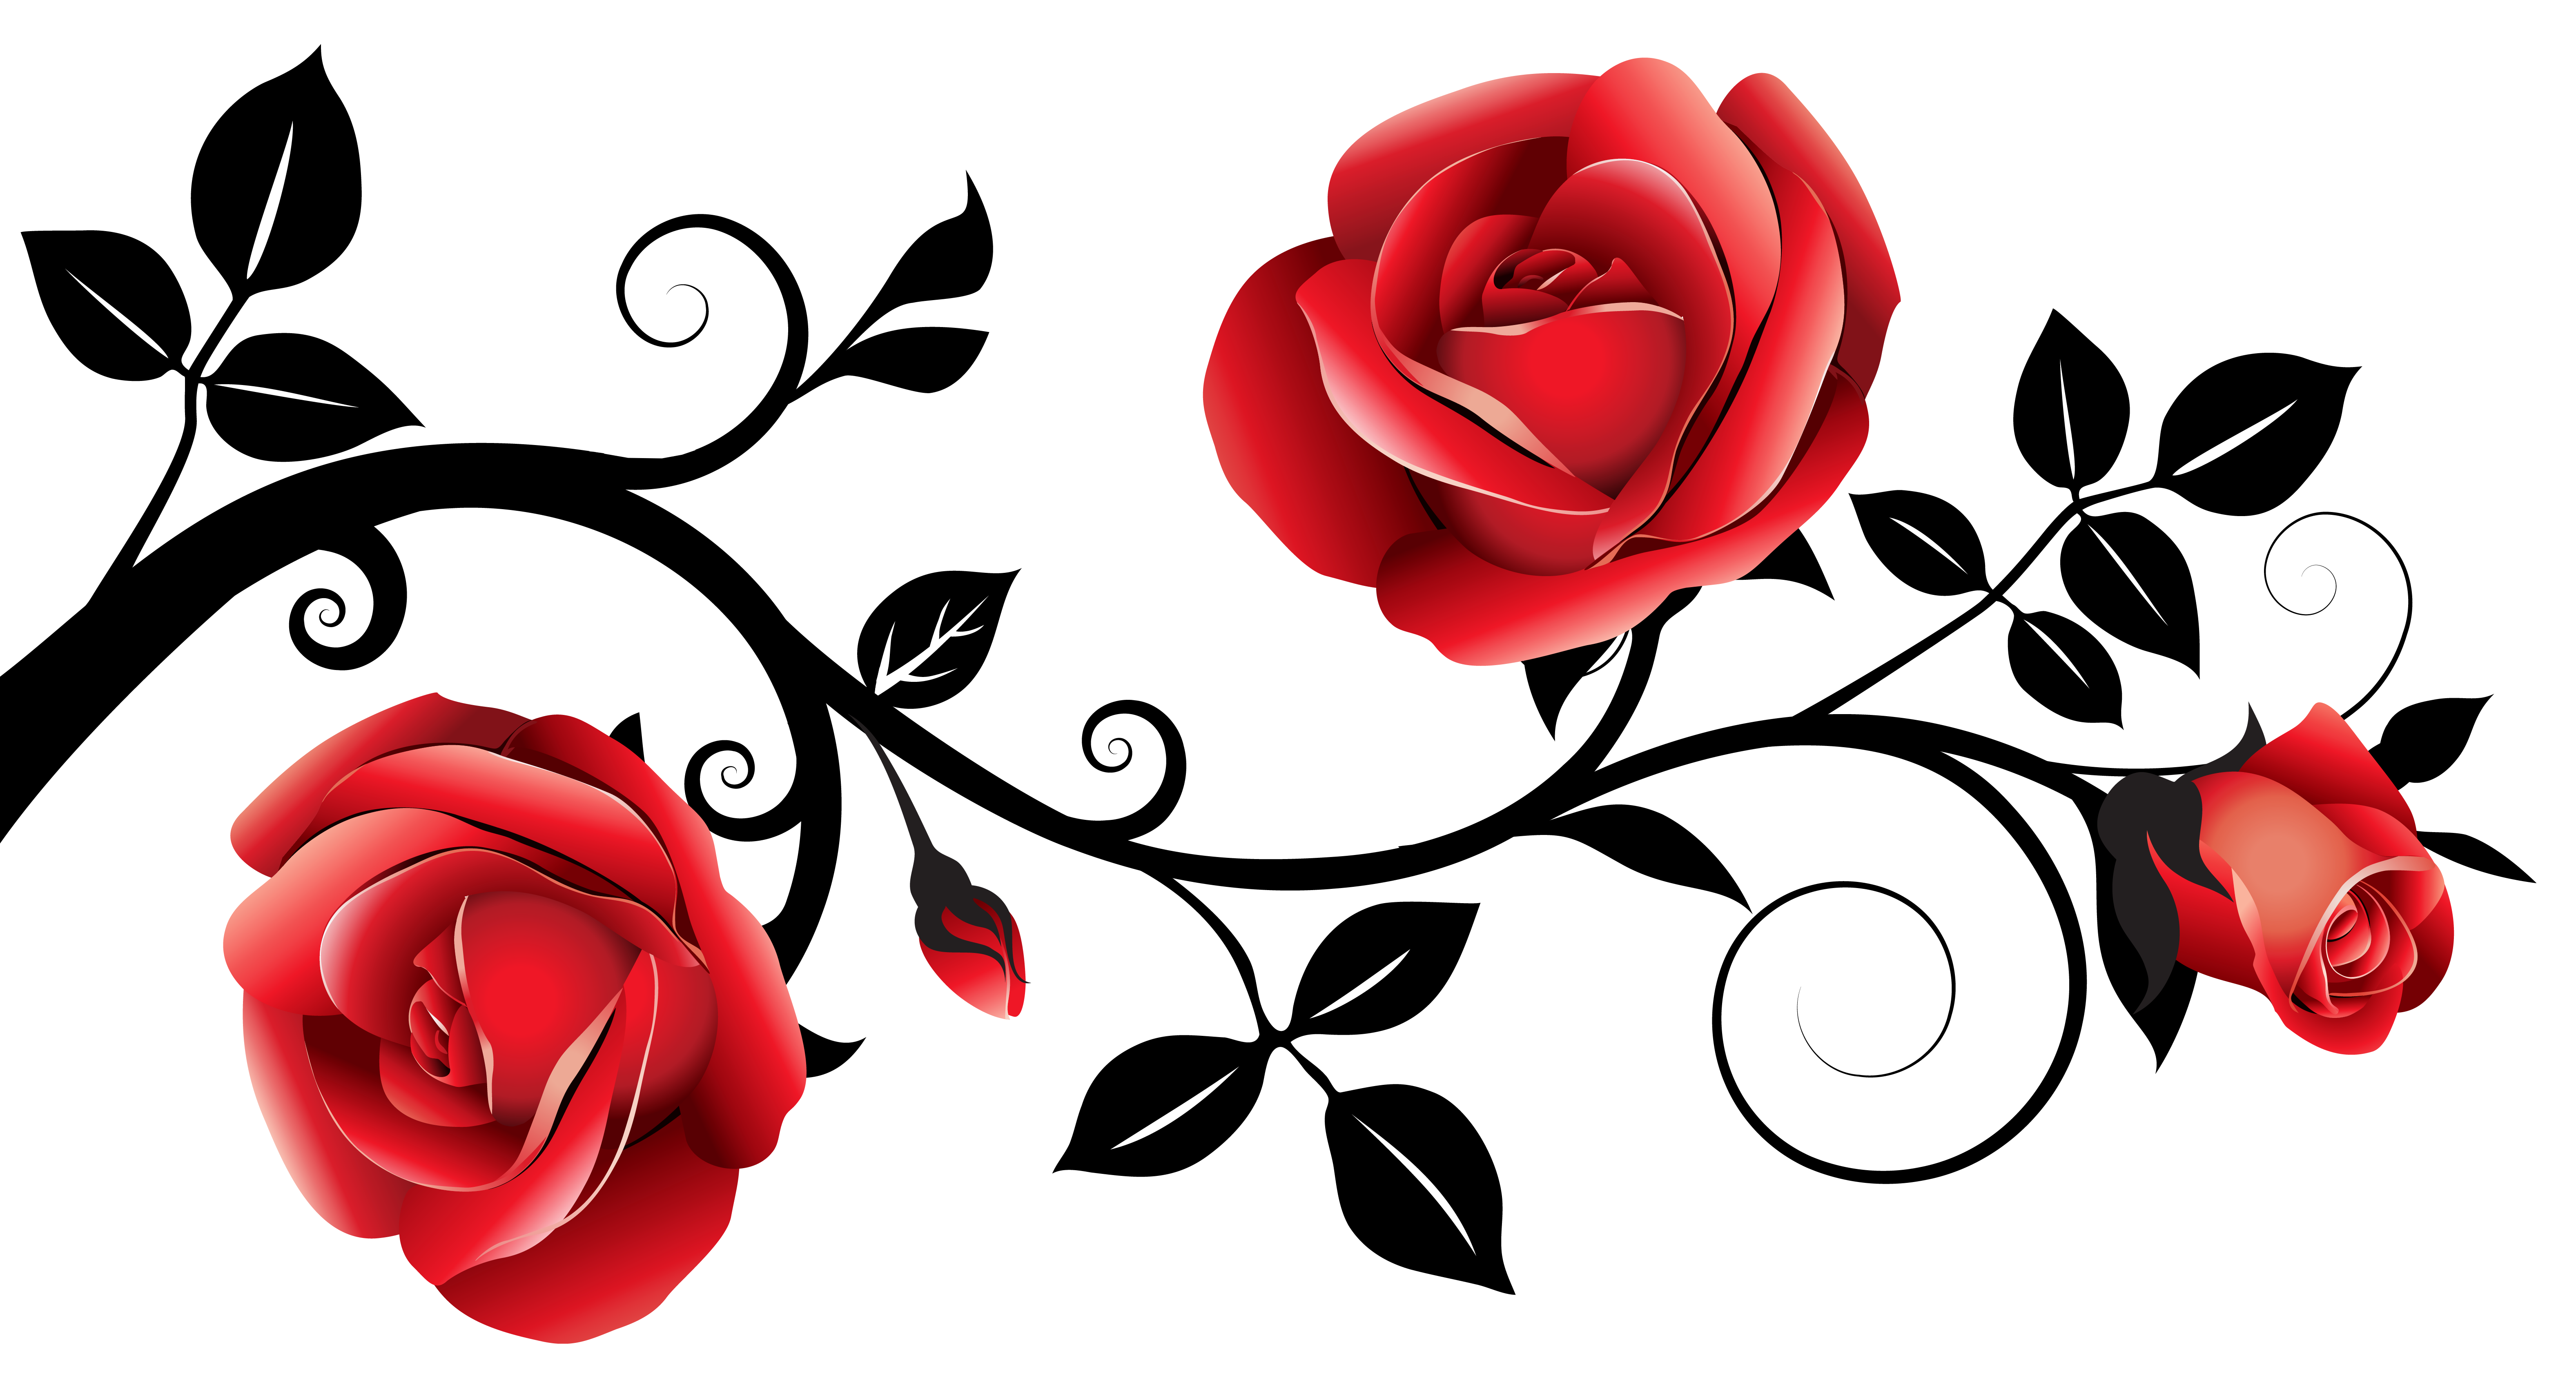 Rose Clipart No Background Free Download Best Rose Clipart No